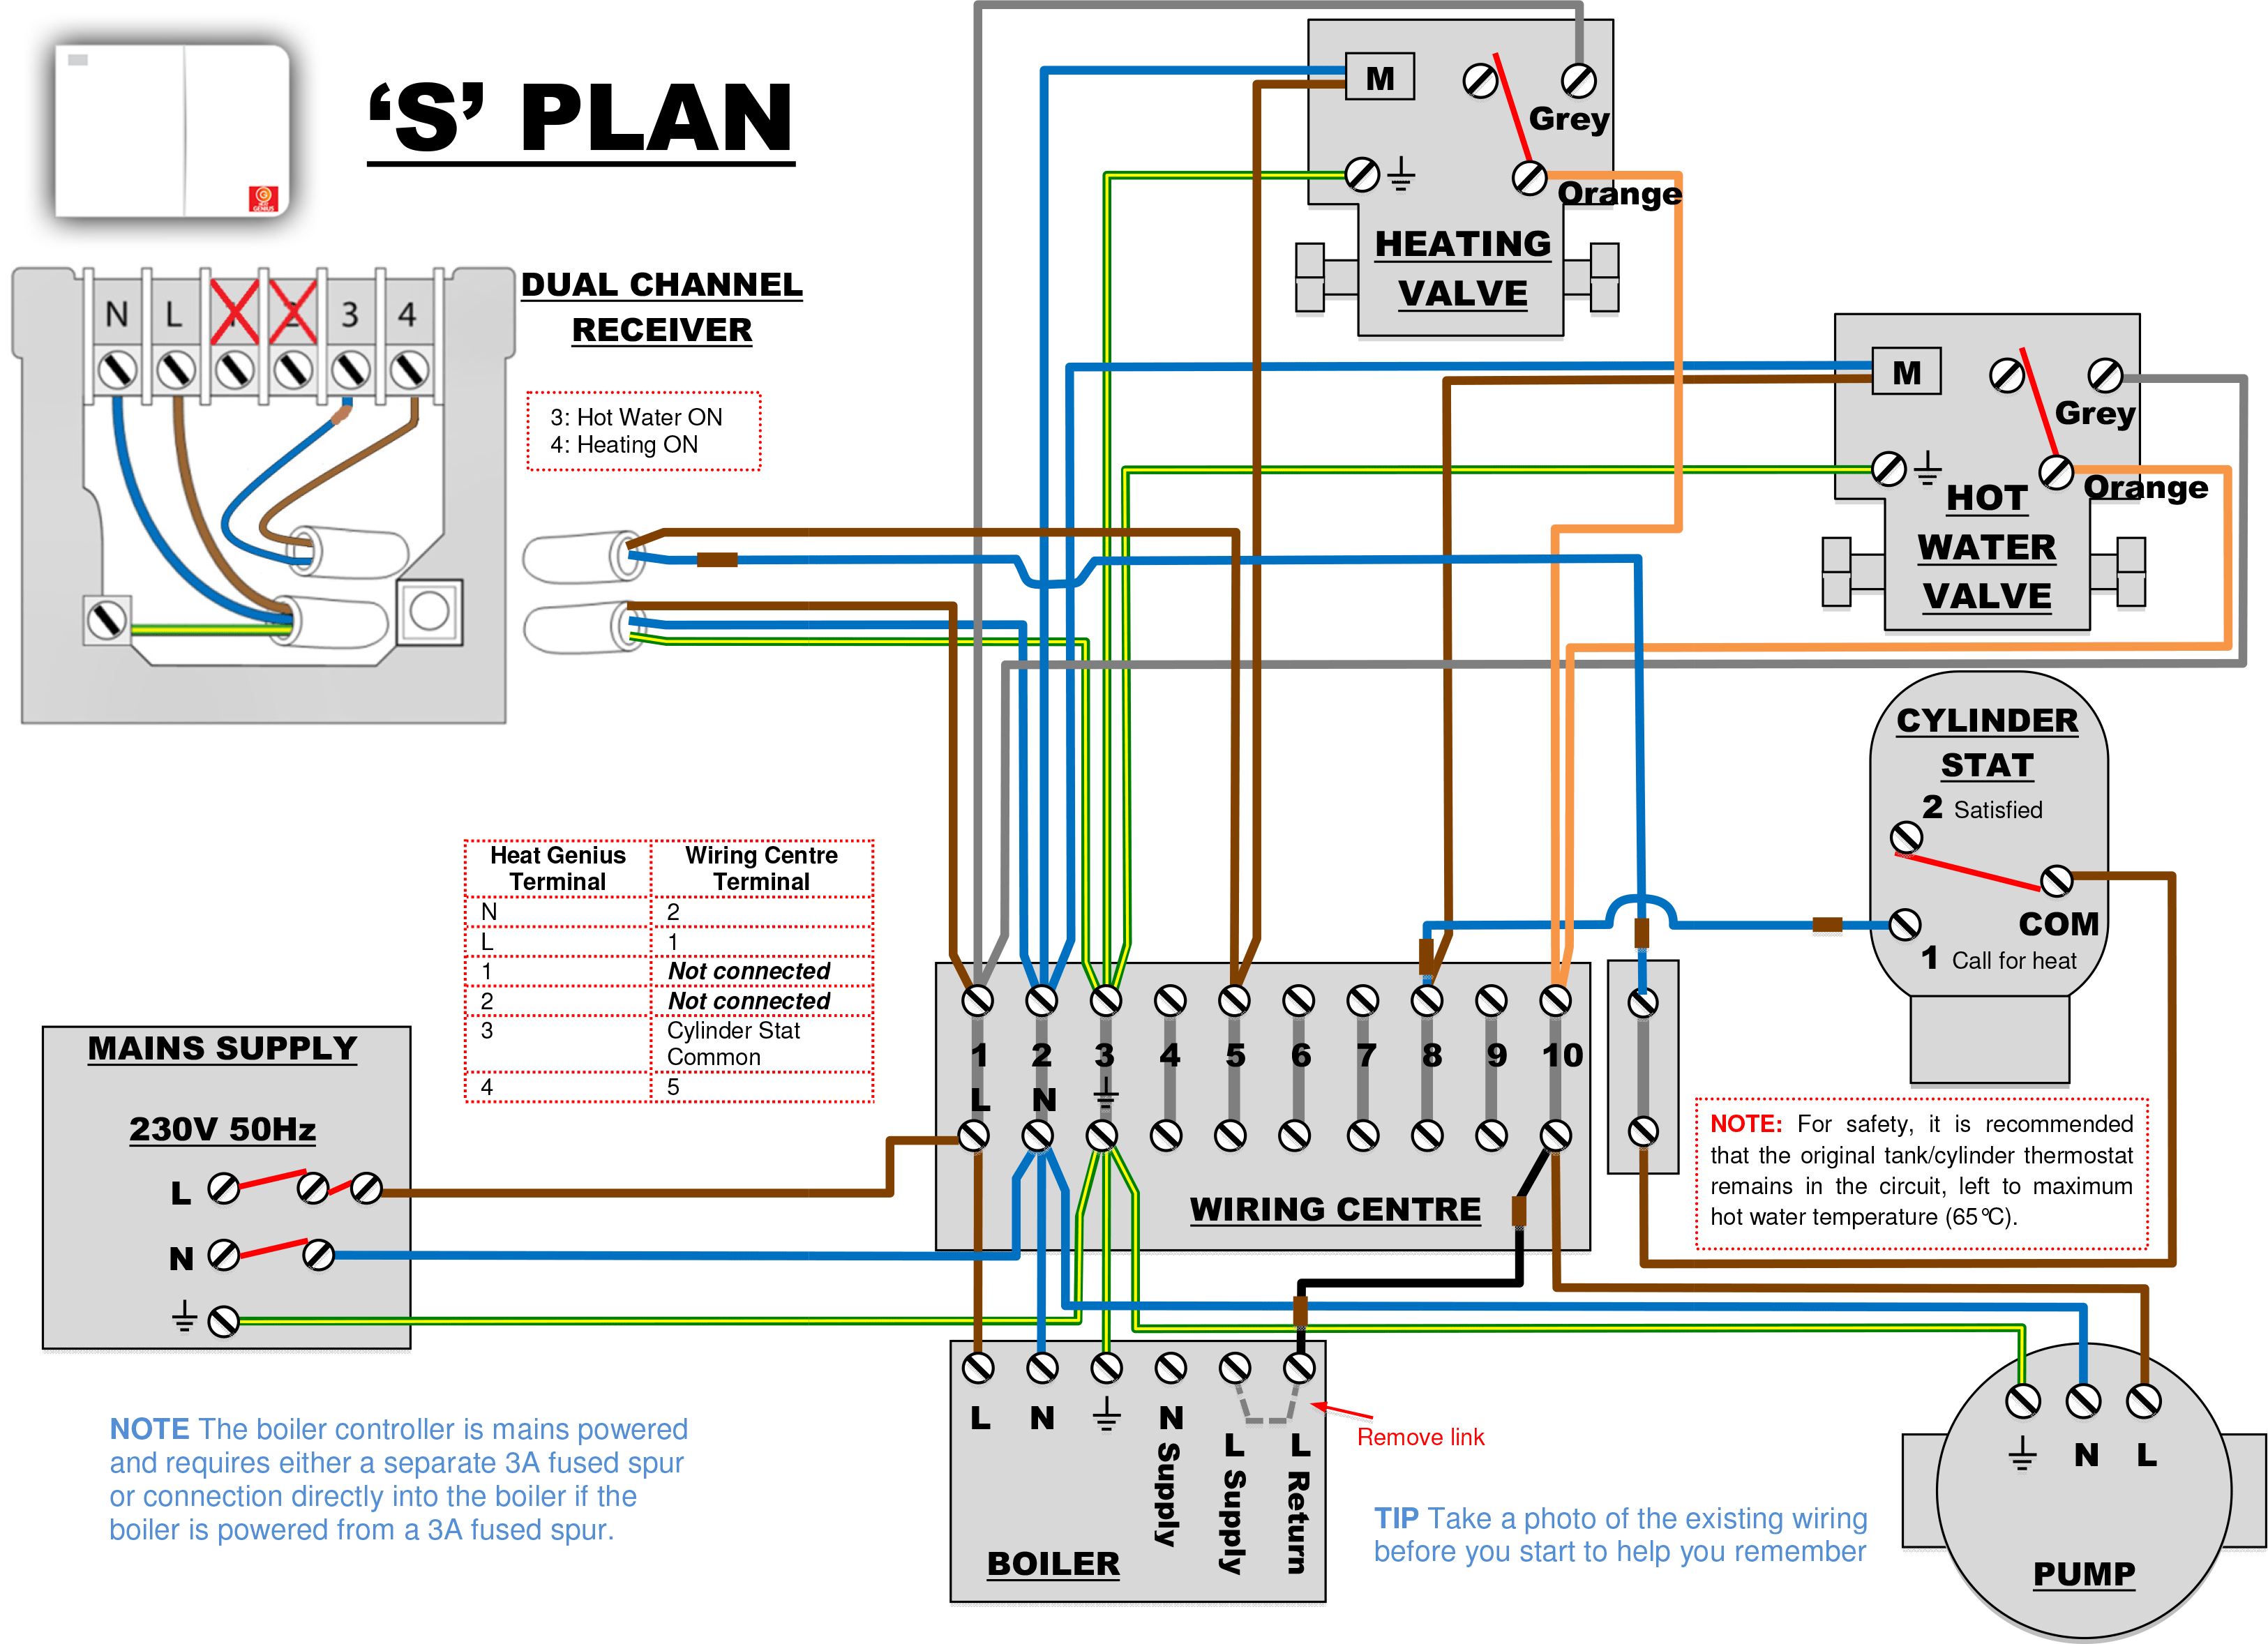 siemens vfd wiring diagram 12 volt cigarette lighter system 3 great installation of g120 on images free download inside with rh pinterest com phase motor